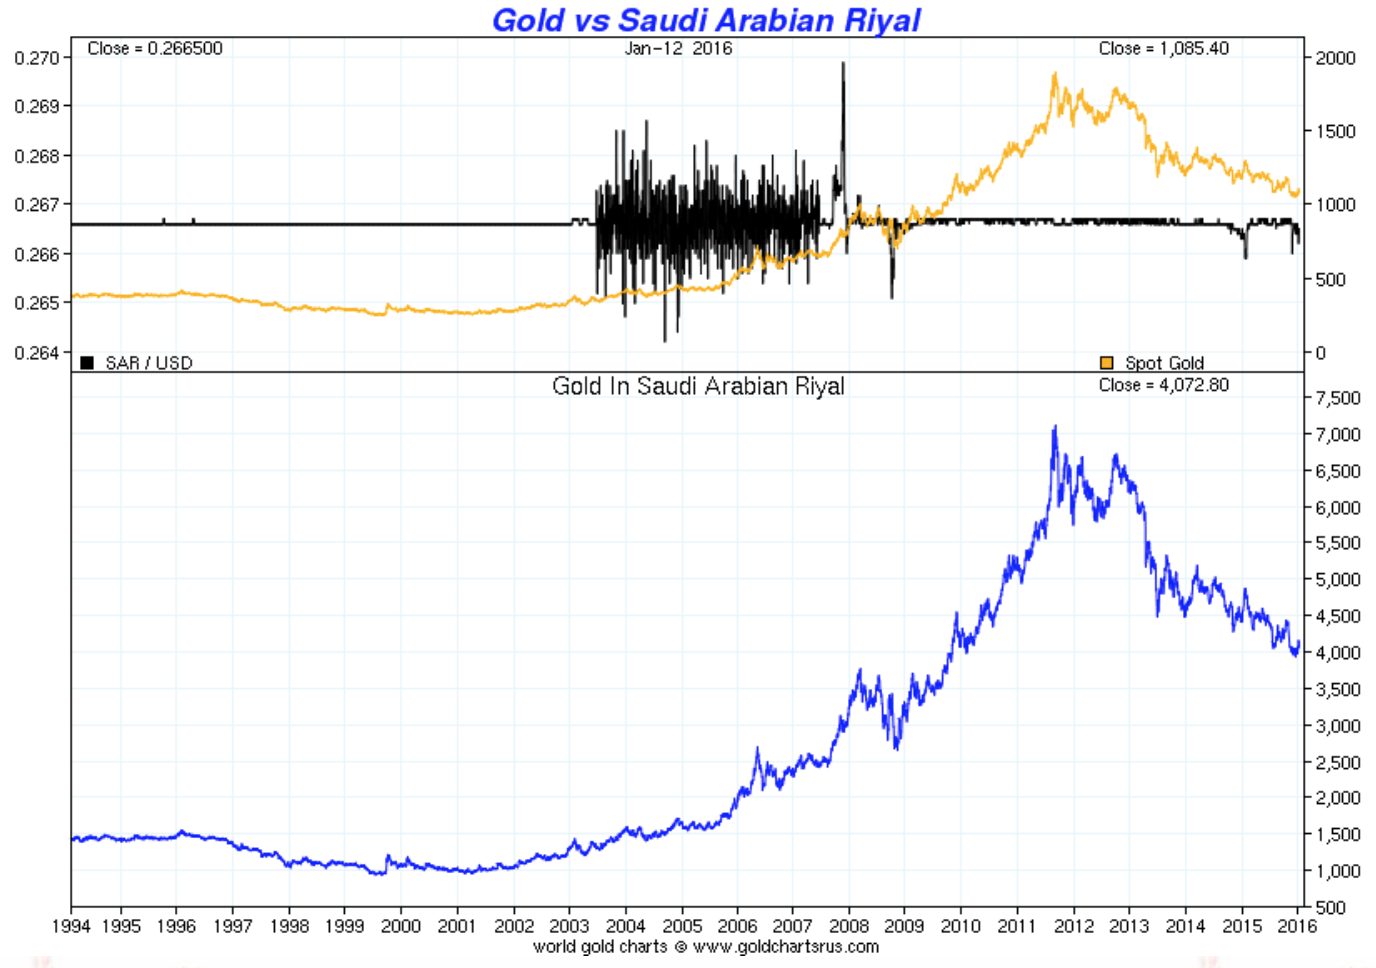 Gold vs Saudi Arabian Riyal